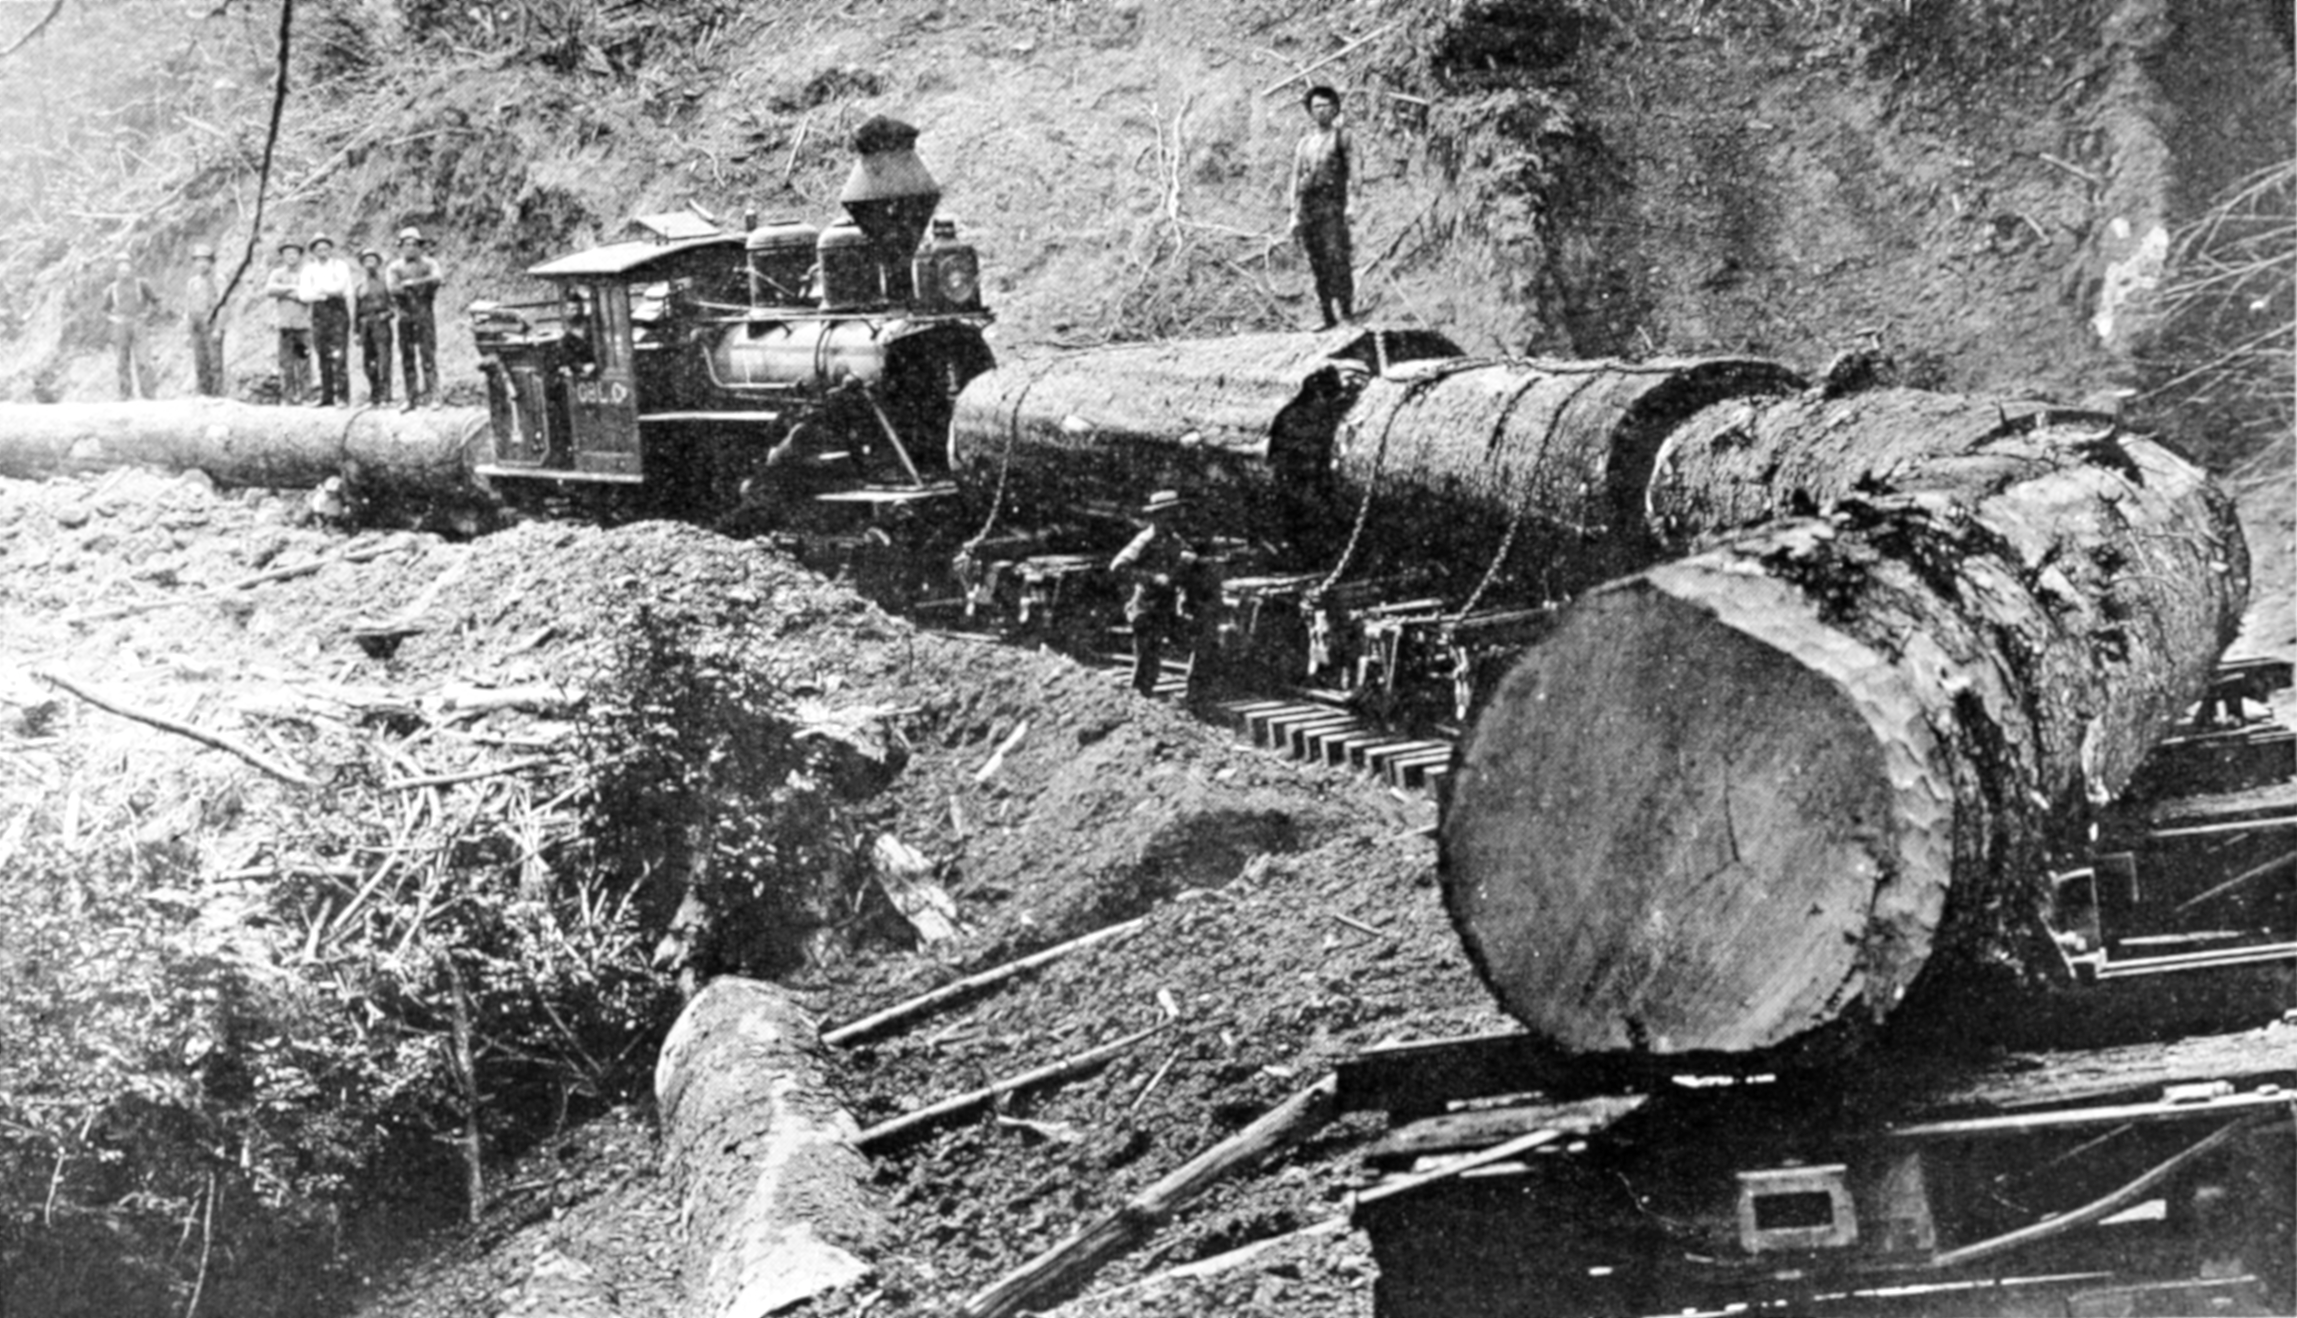 File Logging 1910 From Centennial History Of